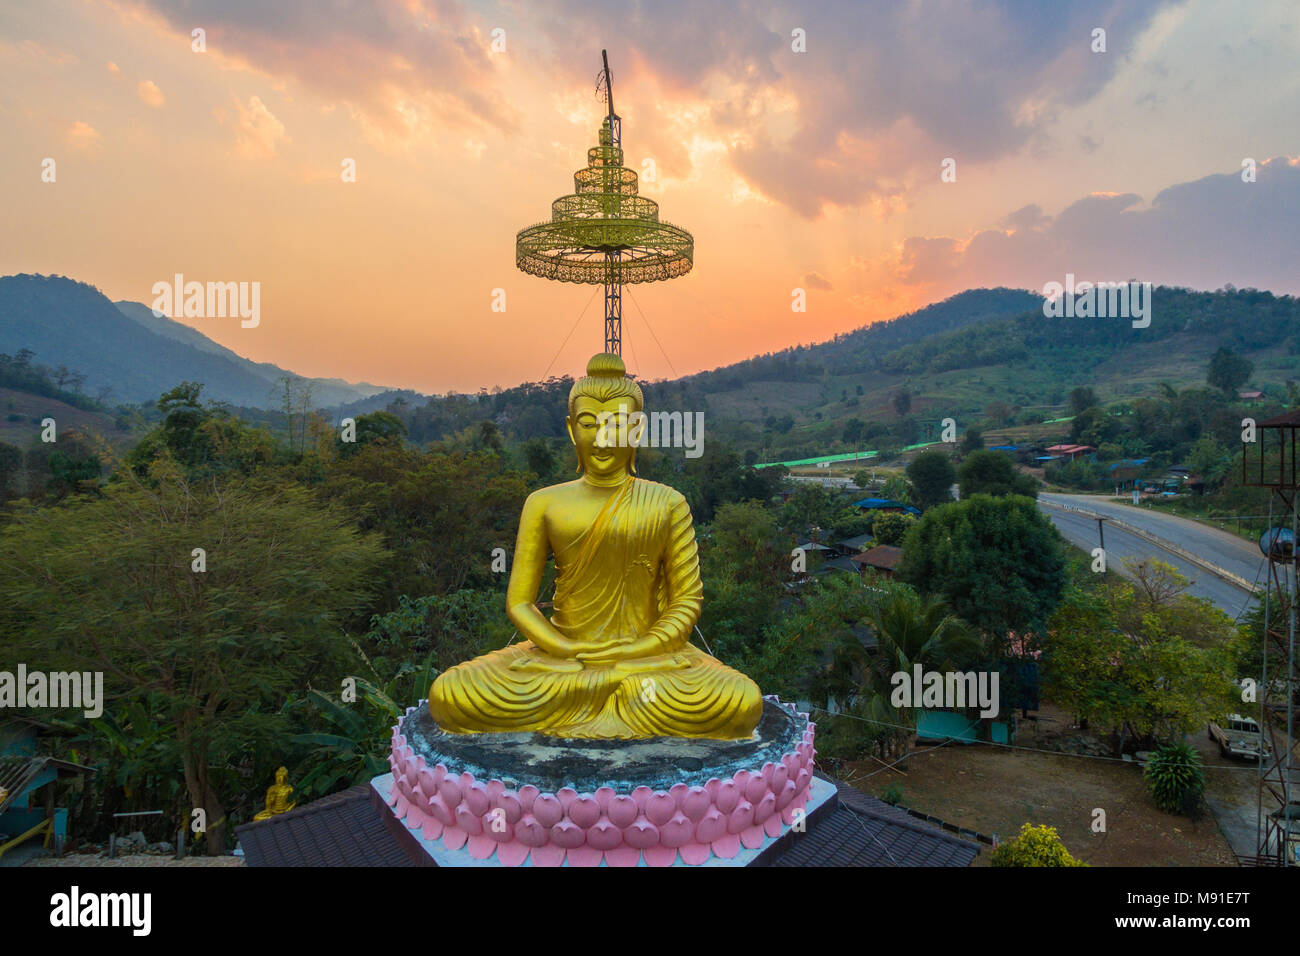 golden spring buddhist personals Personals: screensavers: submit a letter: webcam: weekly poll: about  when we were attending school he was living in golden spring at some foster .